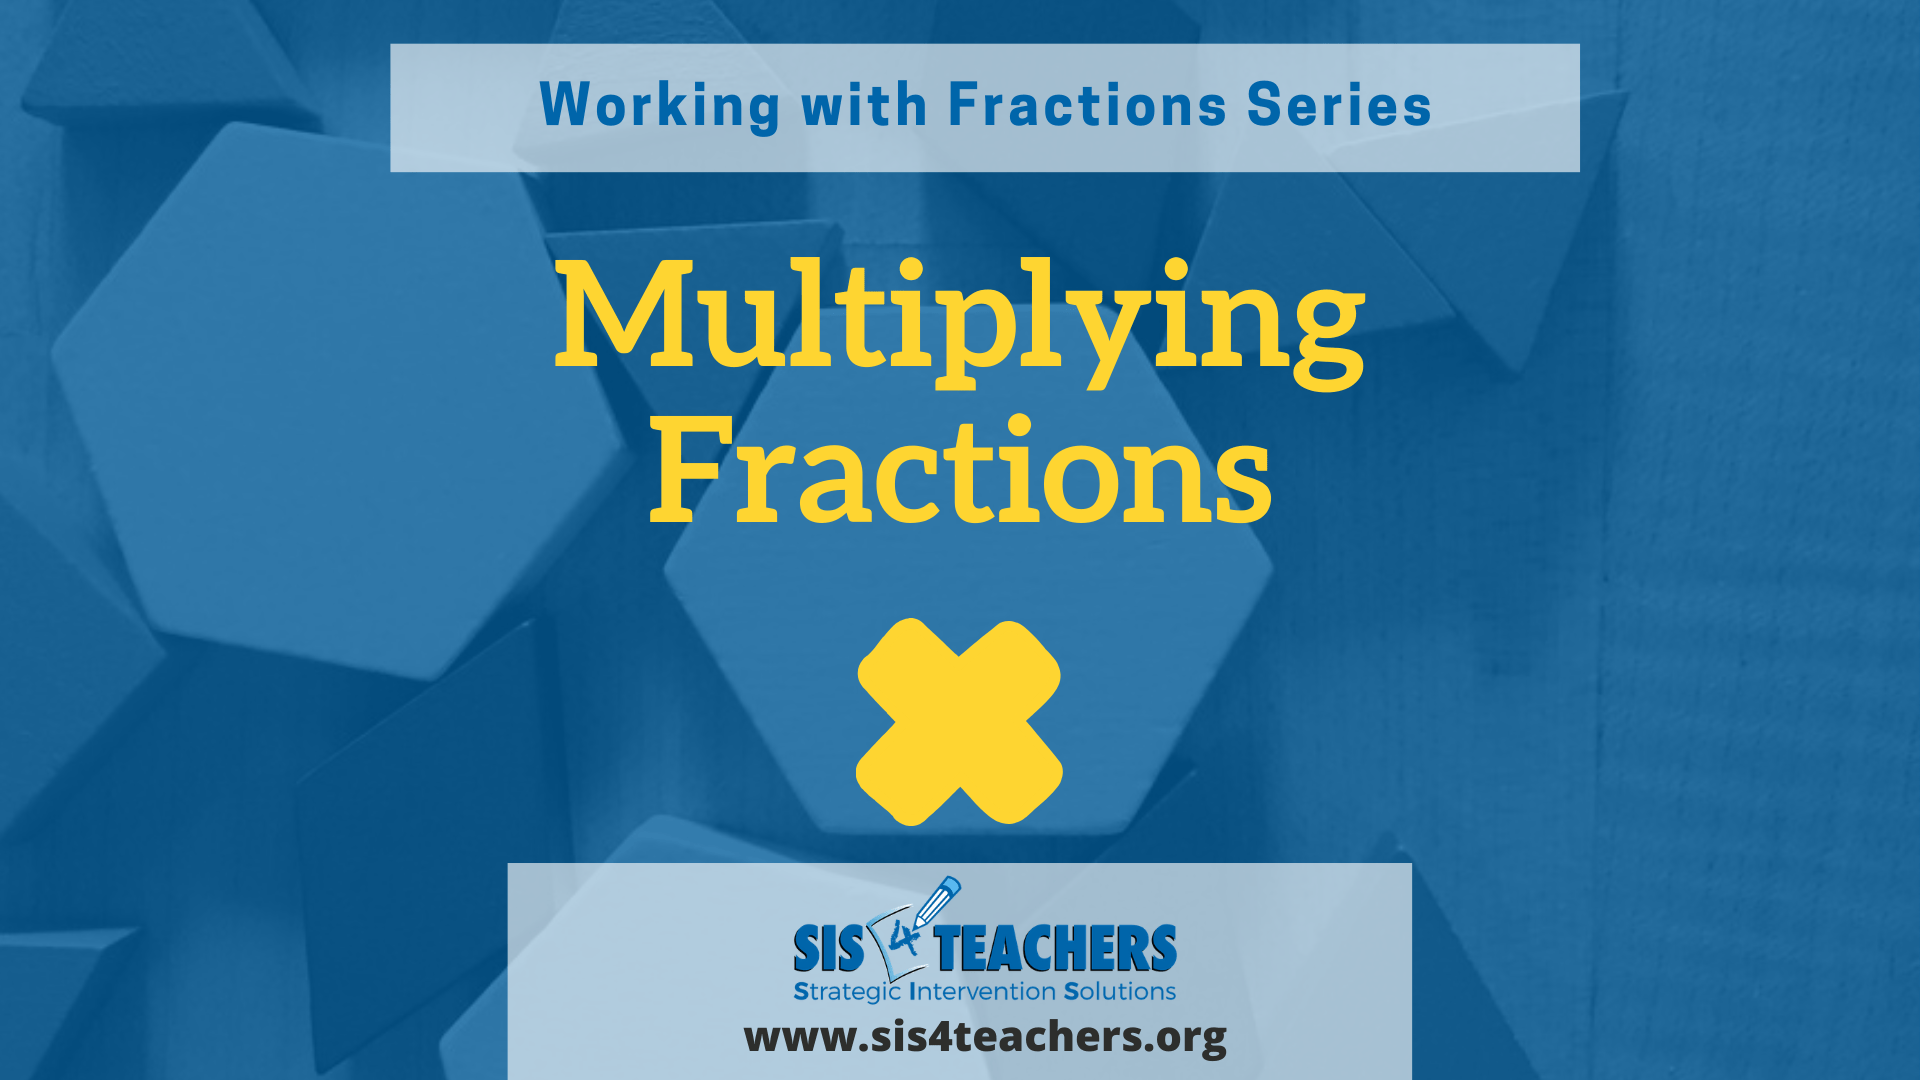 Working with Fractions: Multiplying Fractions